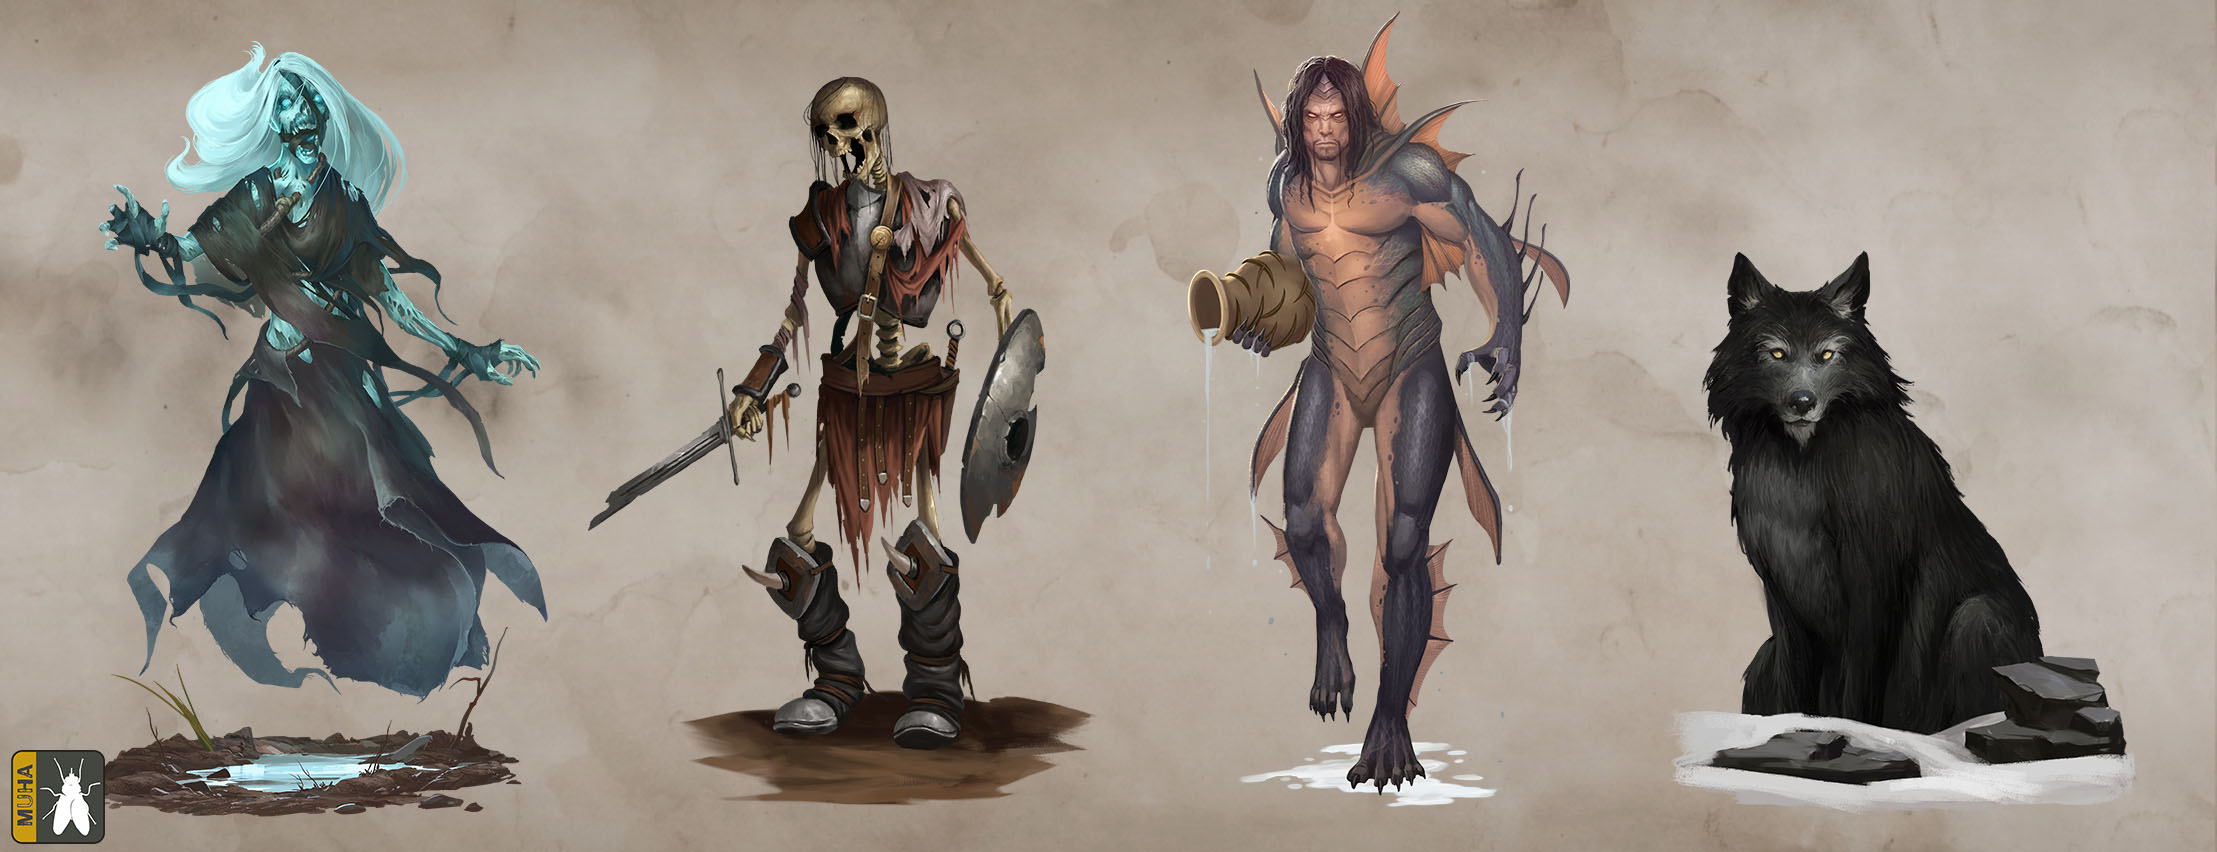 Thea 2 - The Shattering Characters_Monsters2